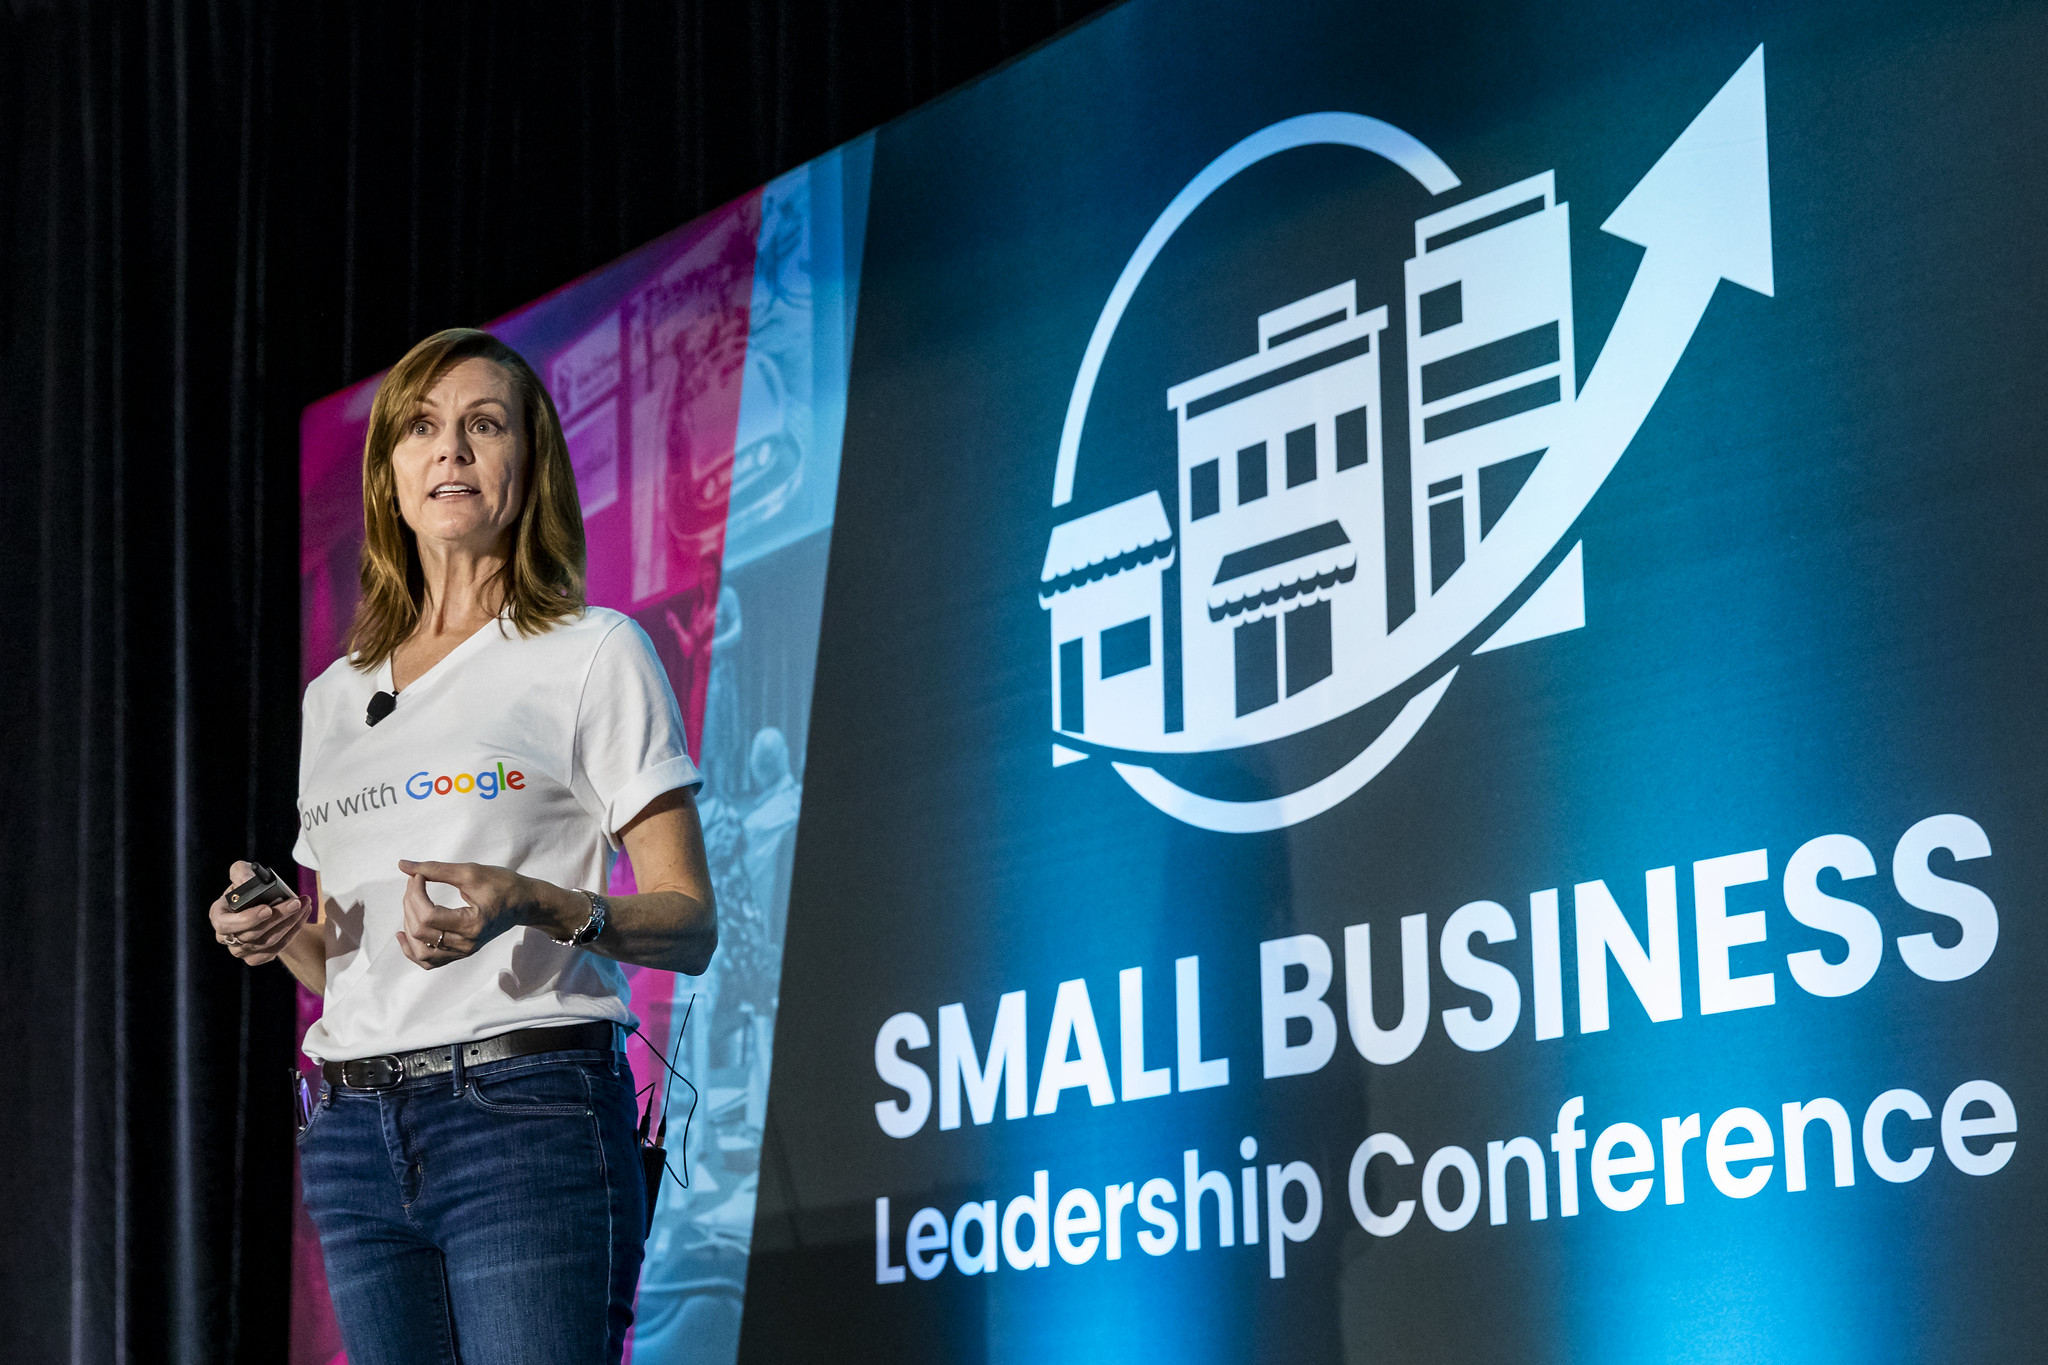 Pamela Starr, a speaker for the Grow with Google partner program, addresses the audience during the 2019 Small Business Leadership Conference in Orlando